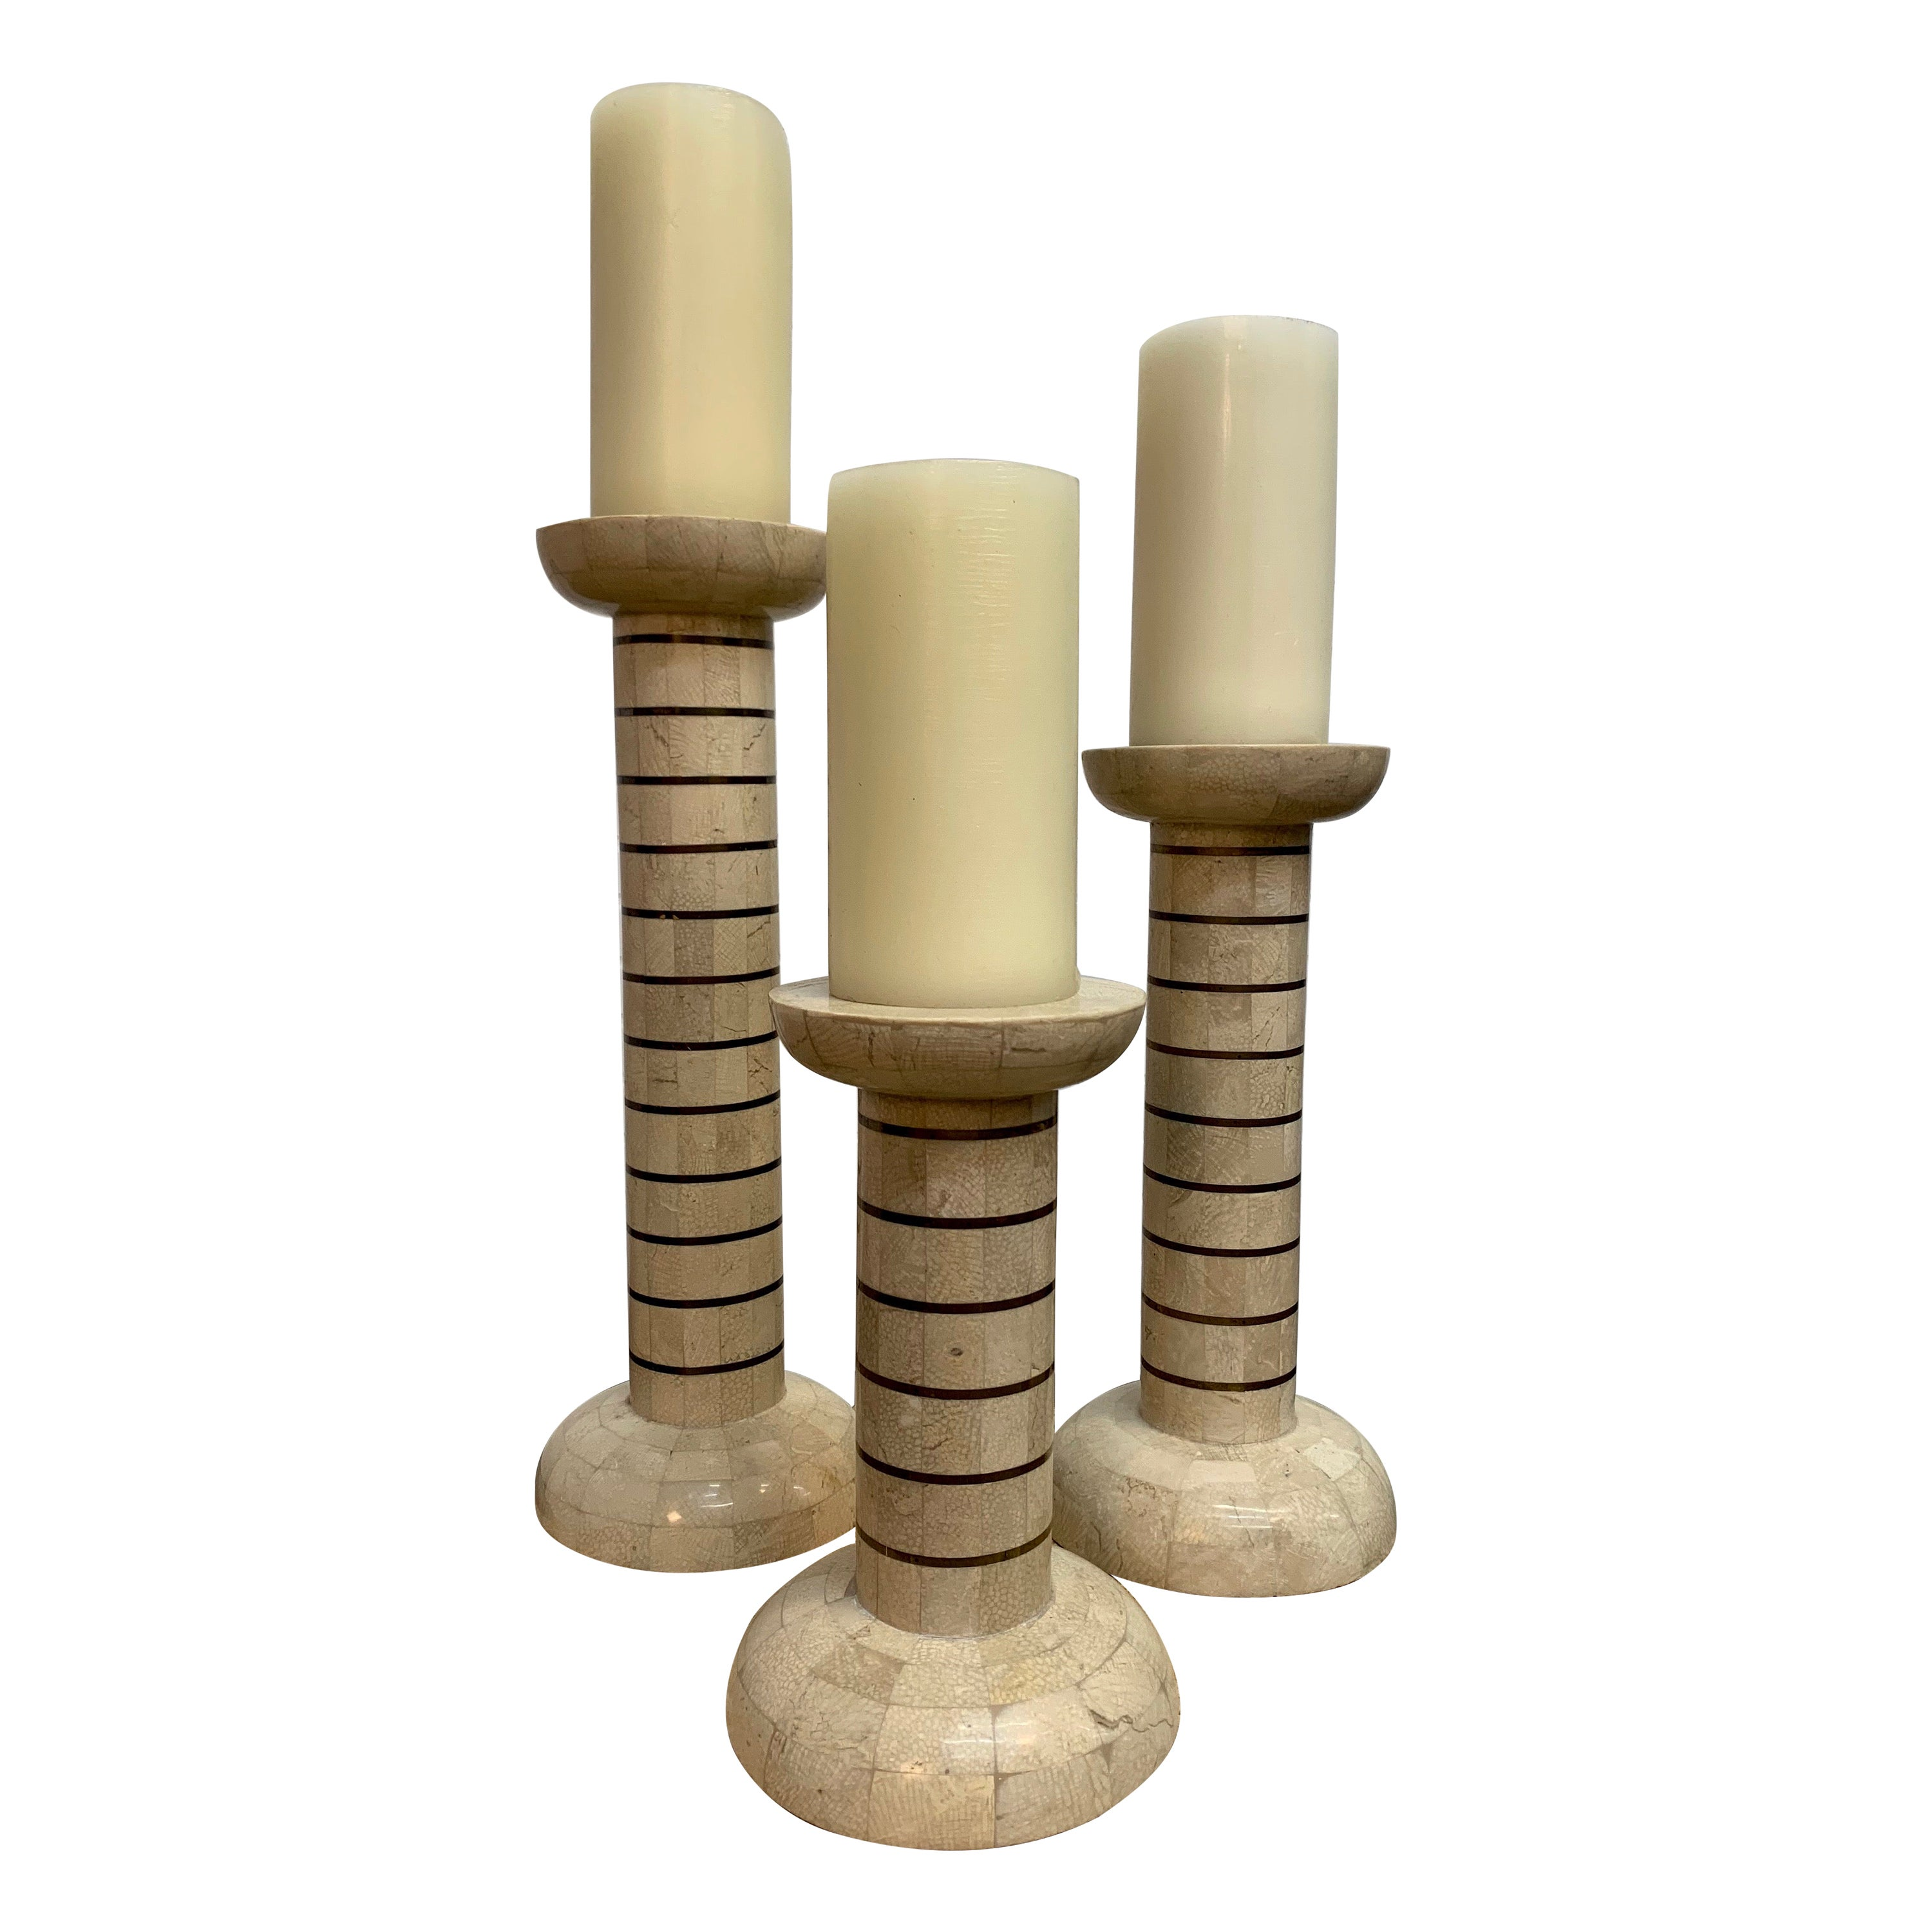 Tessellated Stone and Brass Candlesticks